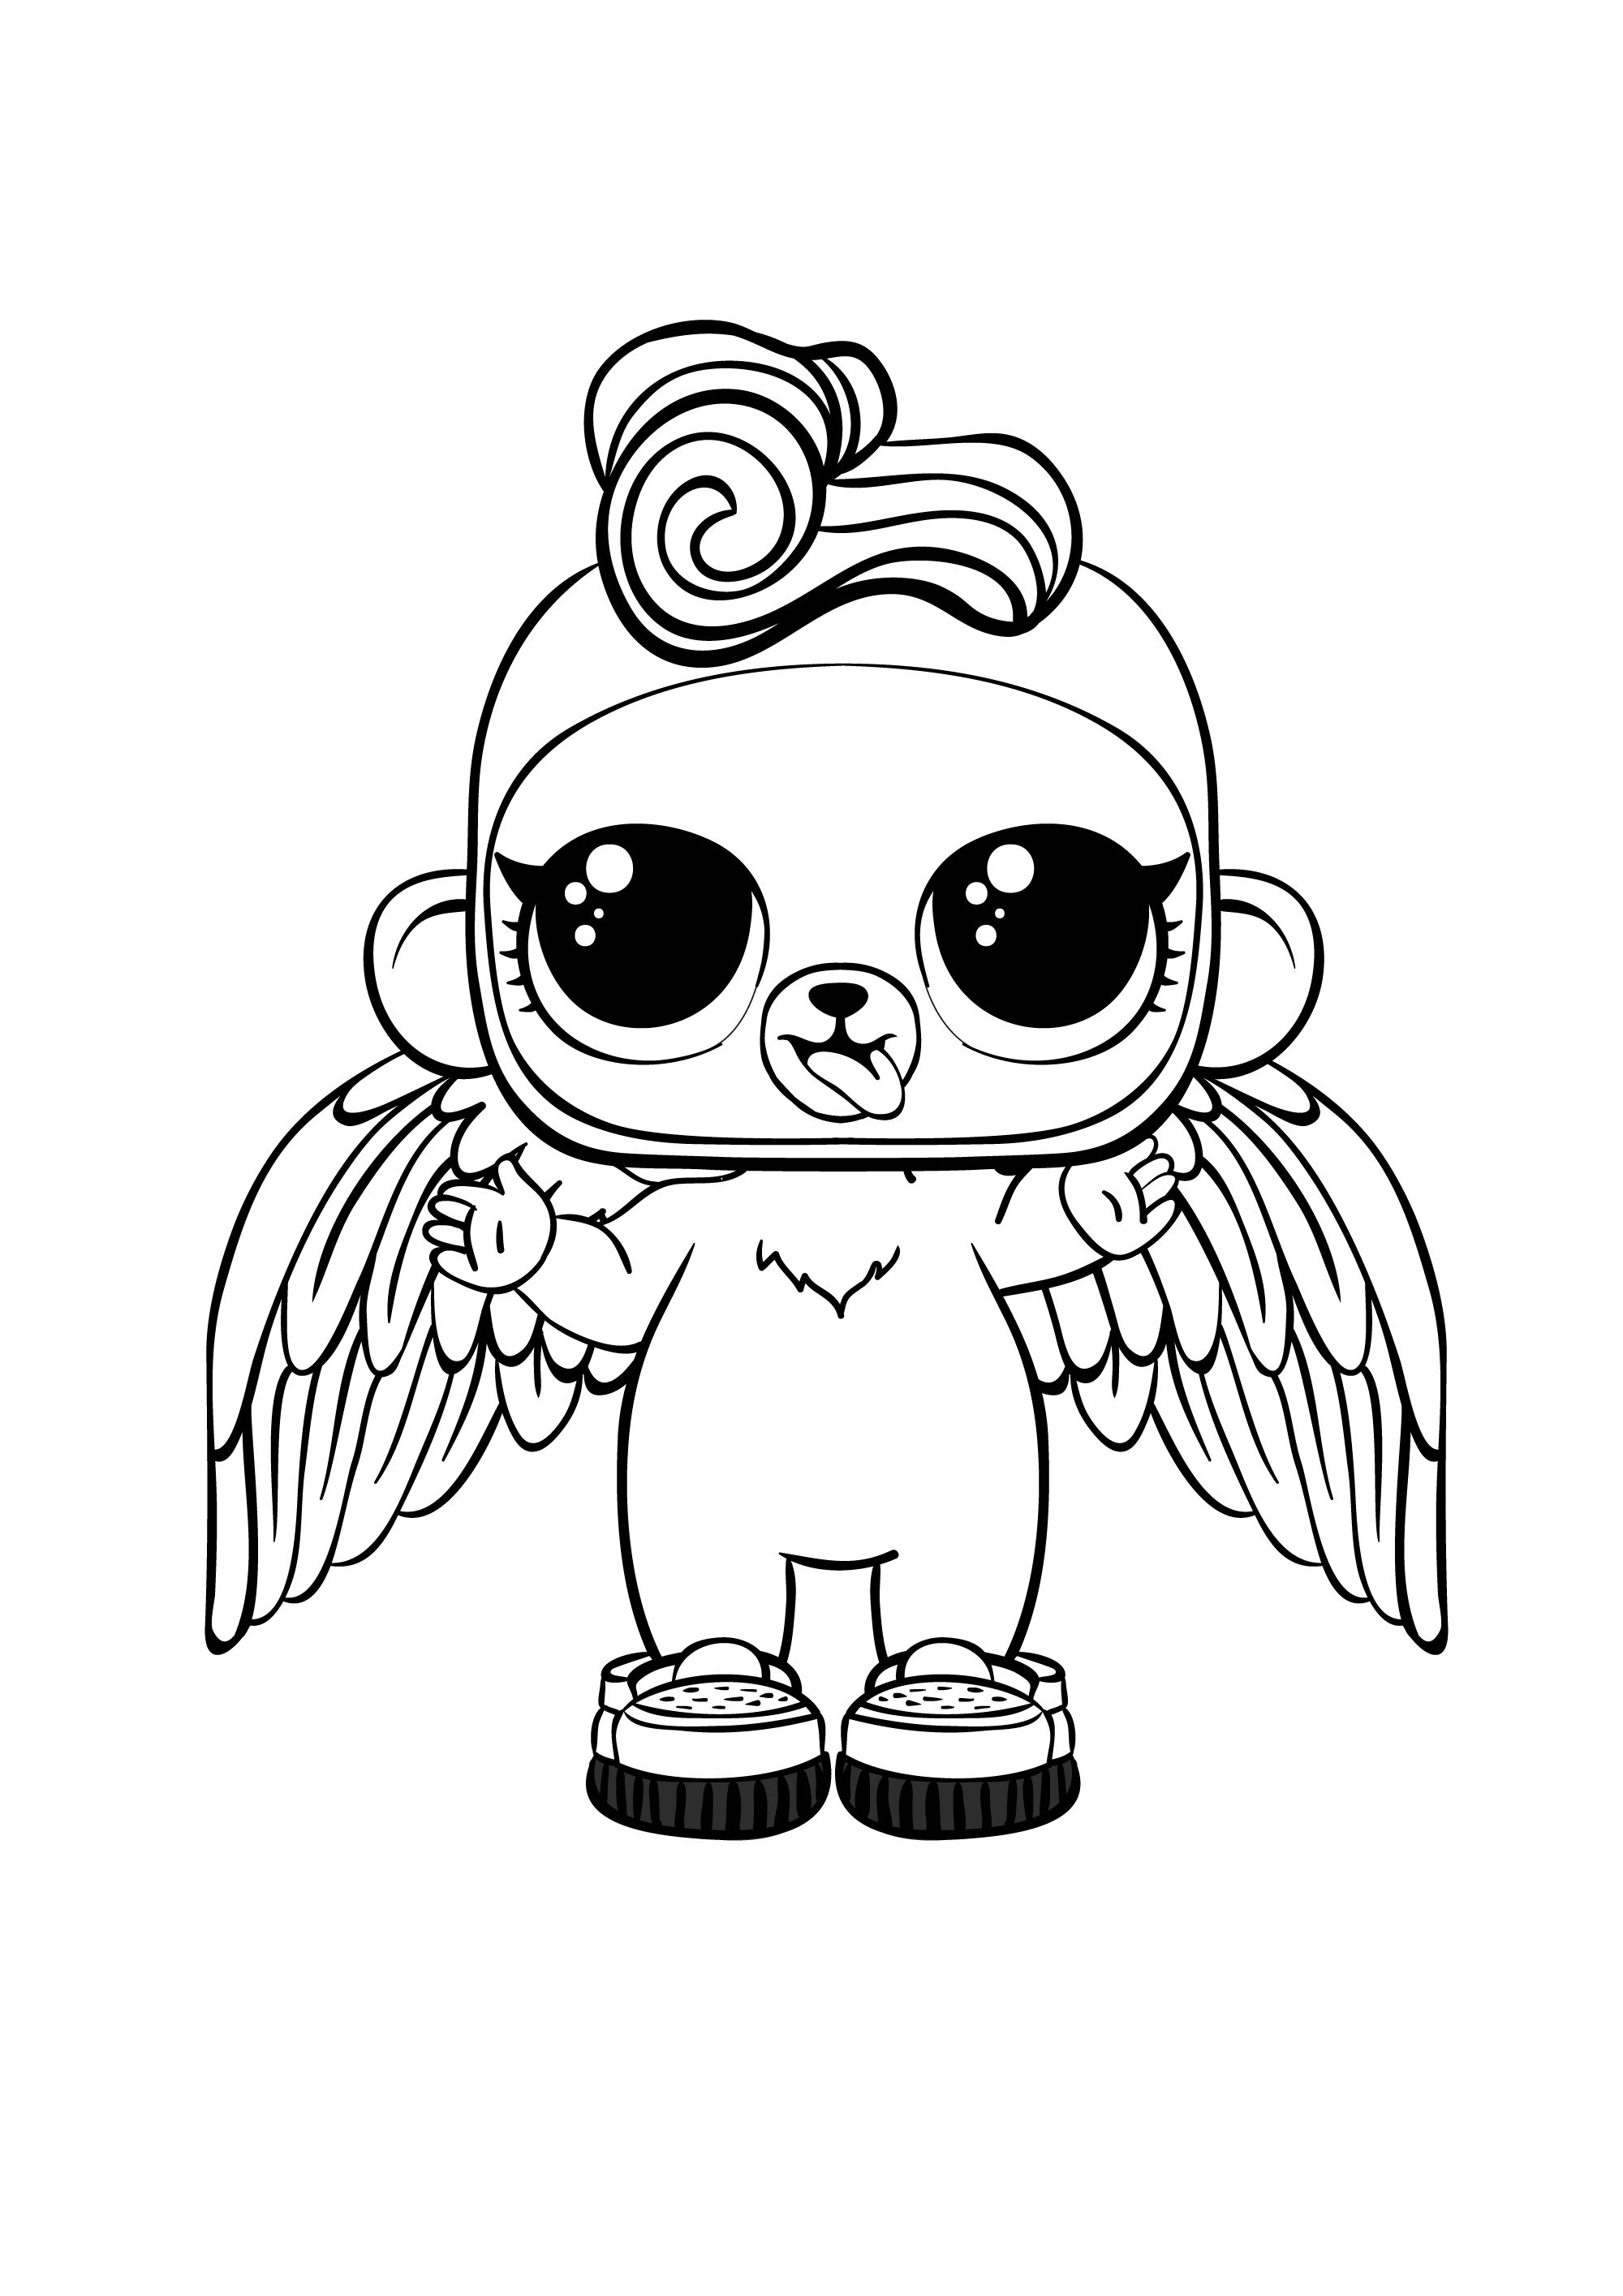 Coloring Pages Lol Surprise Hairgoals And Lol Surprise Boys Lolsdolls In 2020 Cool Coloring Pages Animal Coloring Pages Monkey Coloring Pages